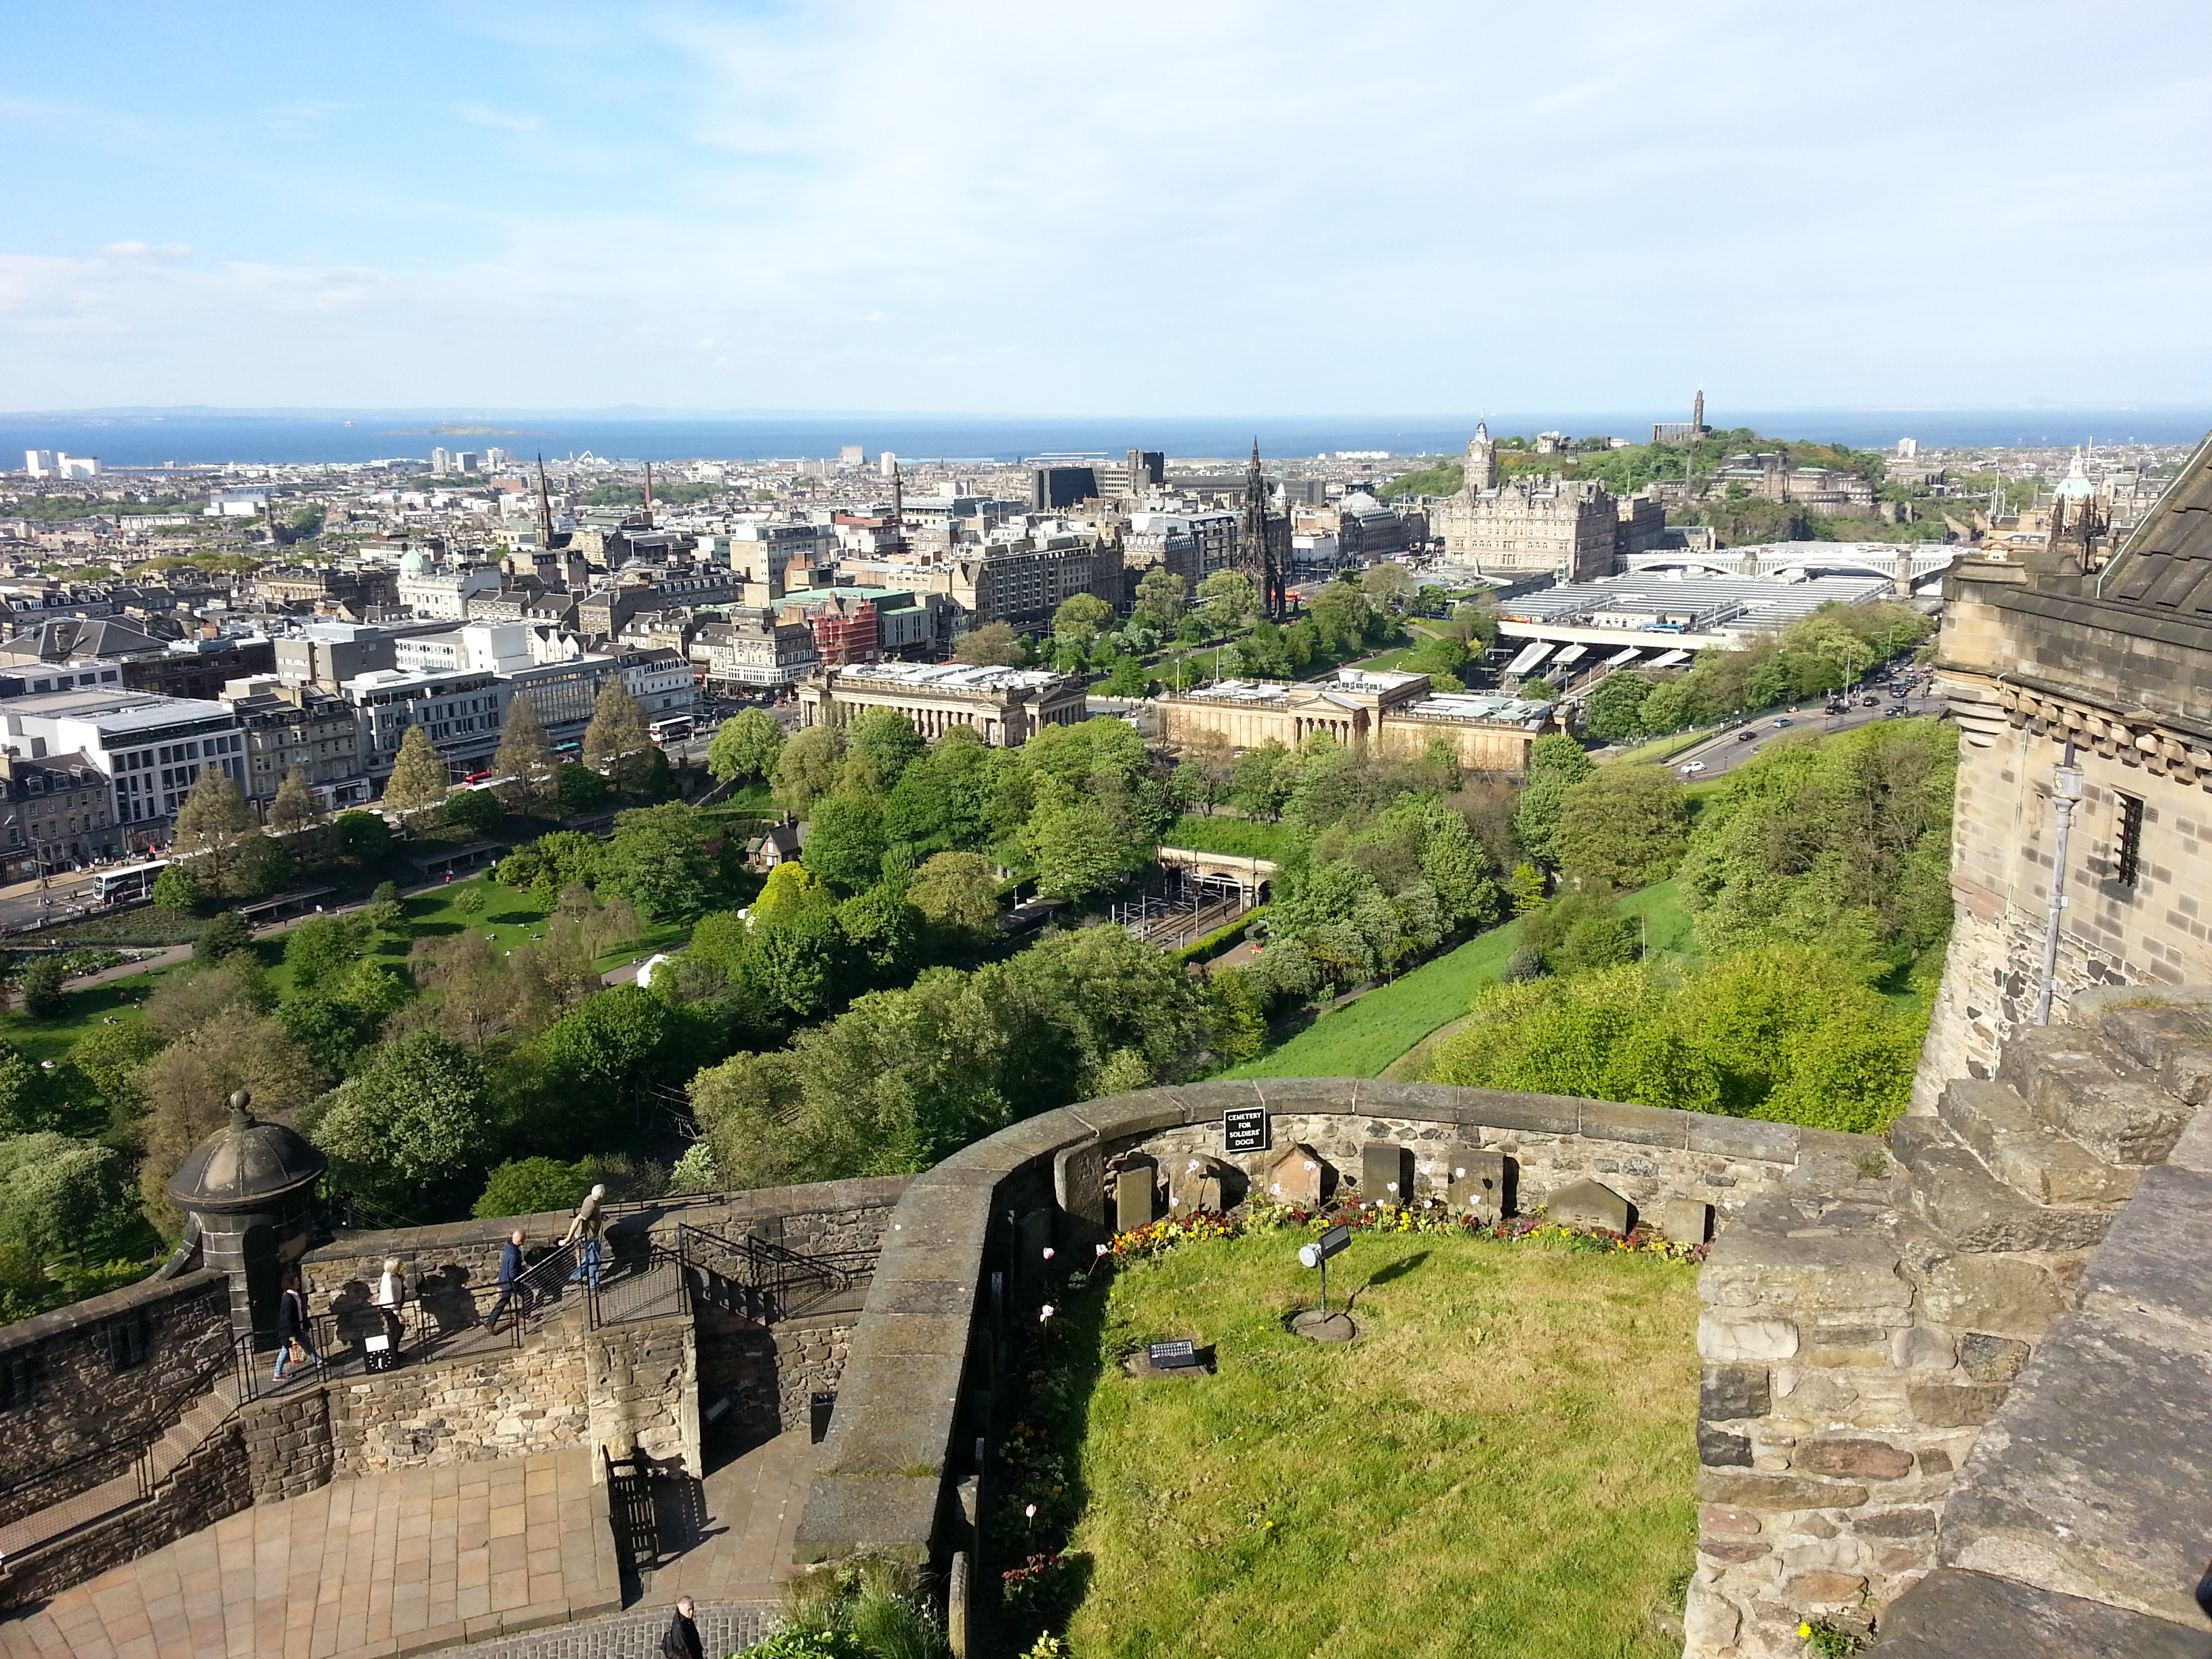 Edinburgh: New Town as seen from Castle walls